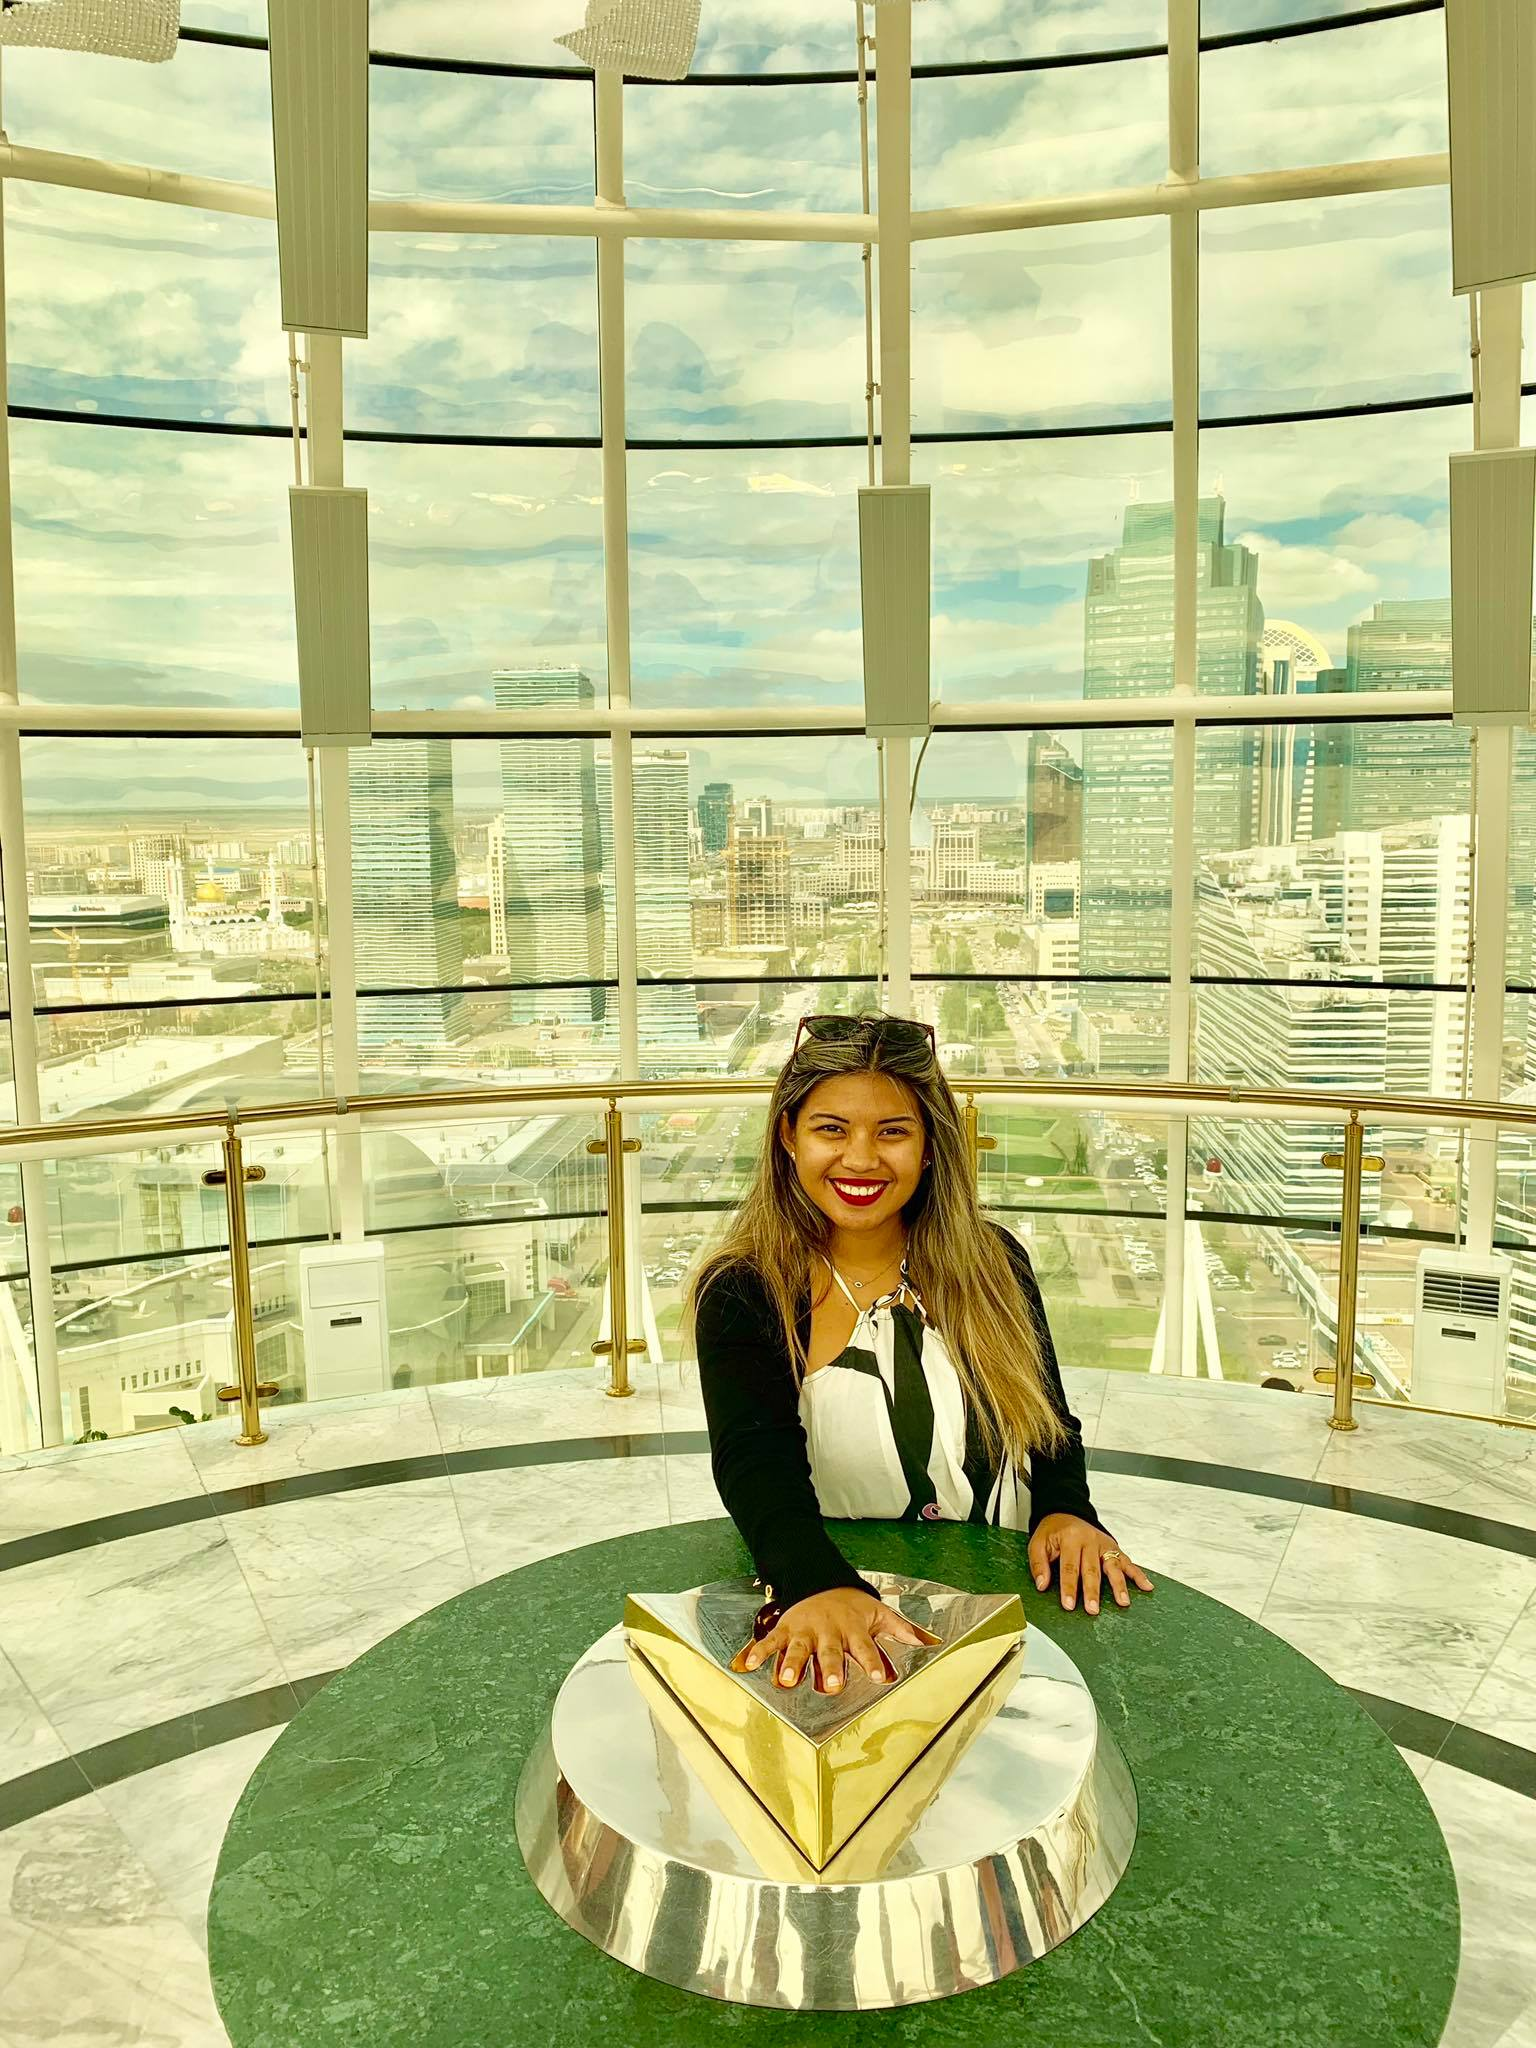 Kach Solo Travels in 2019 Nursultan  Astana - the City of the Future22.jpg